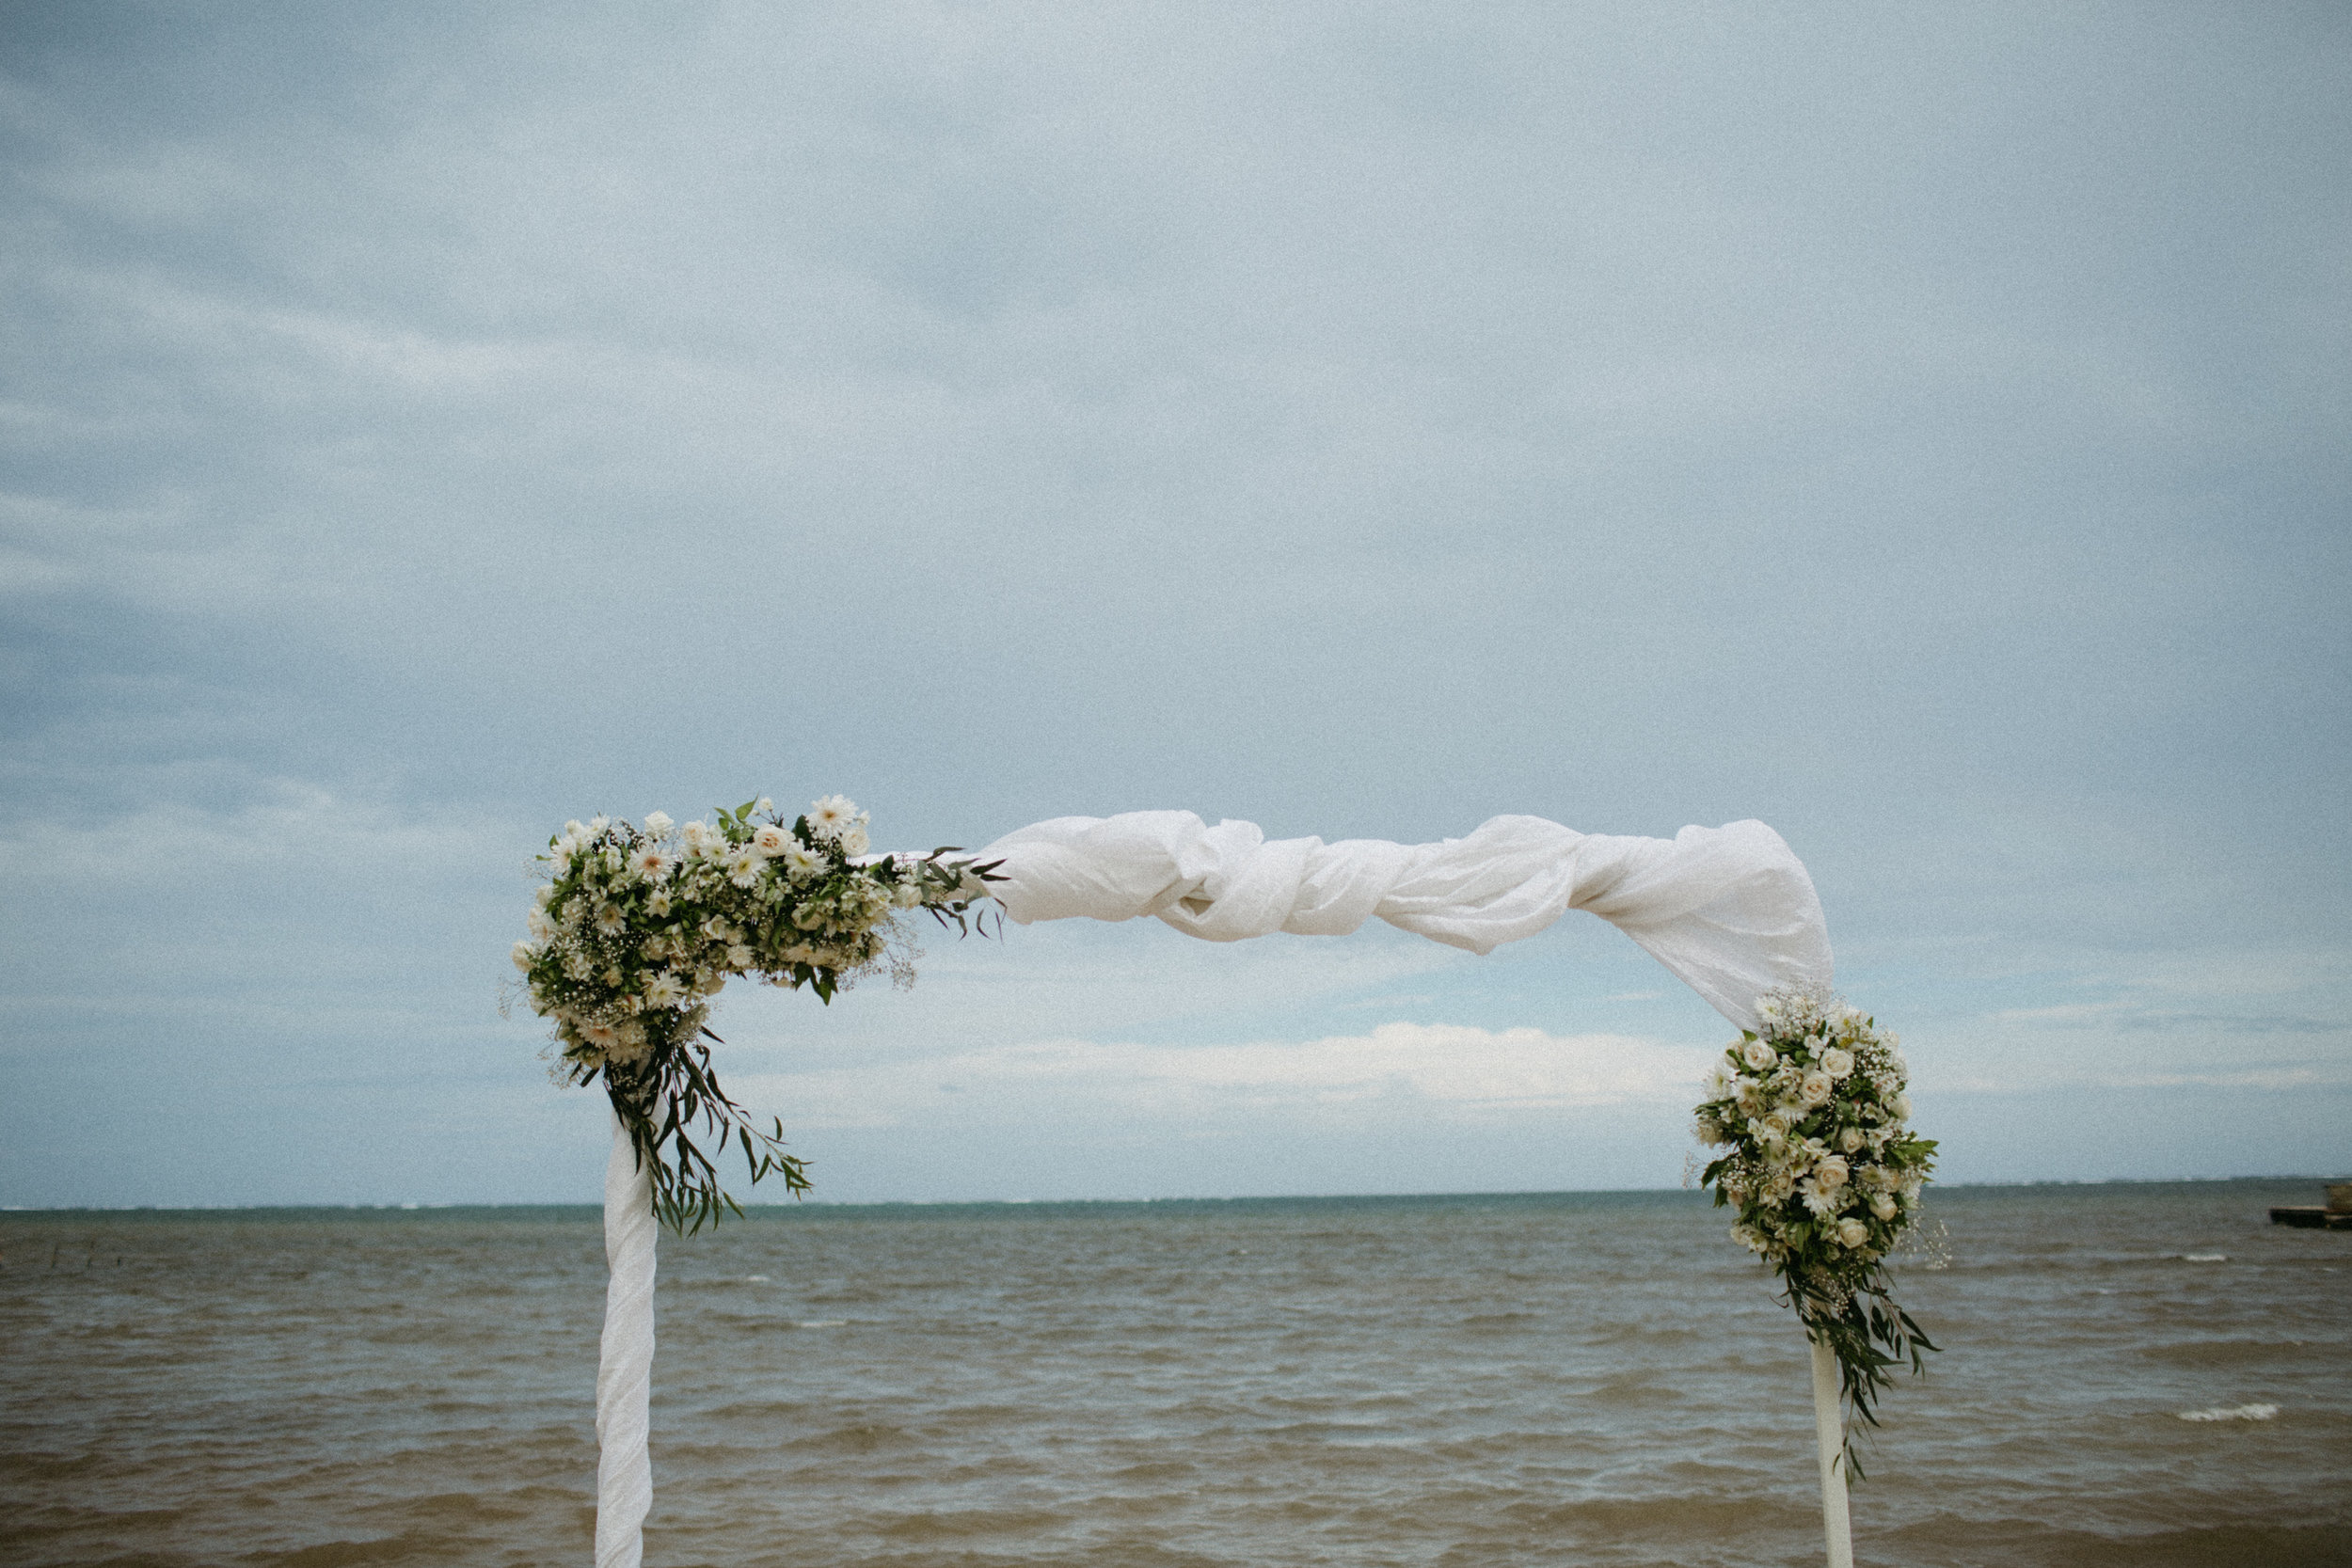 san-pescador-belize-wedding-christinemariephoto-j-k-72.jpg